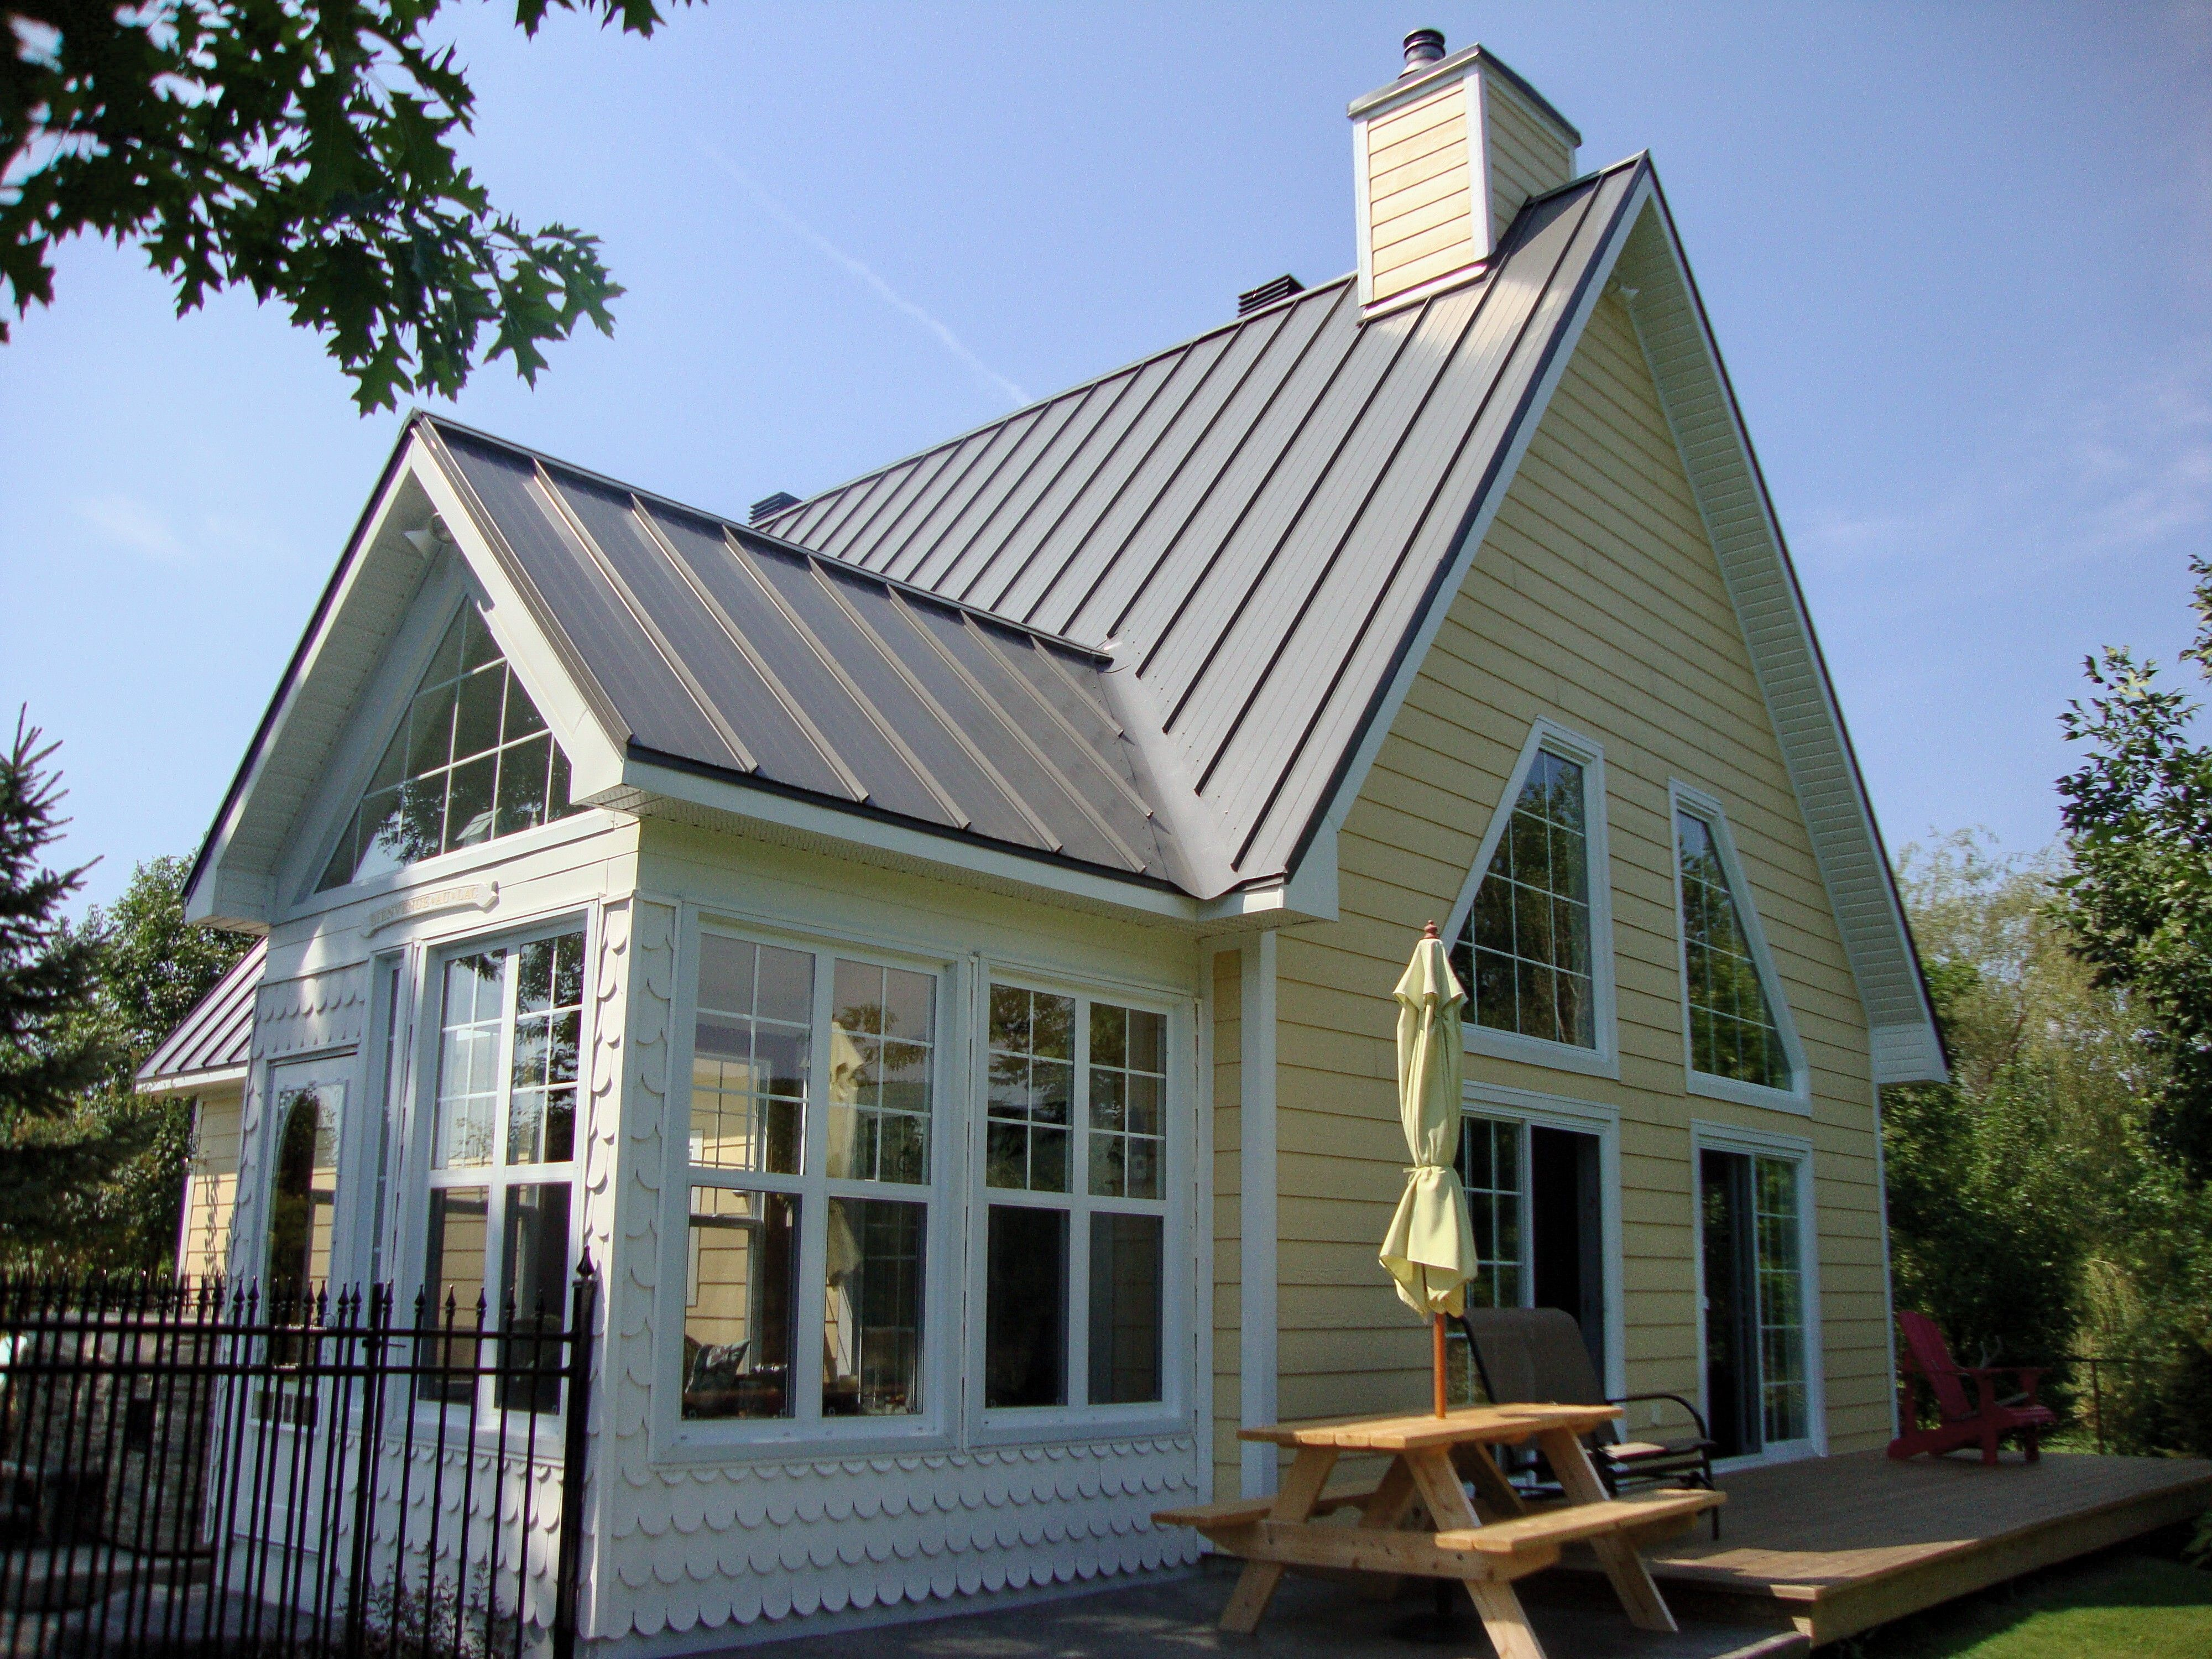 Metal Roofing Steel Roofing Visit Http Idealroofing Ca English Us Html Prod Hf Php Type Lw Residential Steel Roofing Roof Styles Roof Design